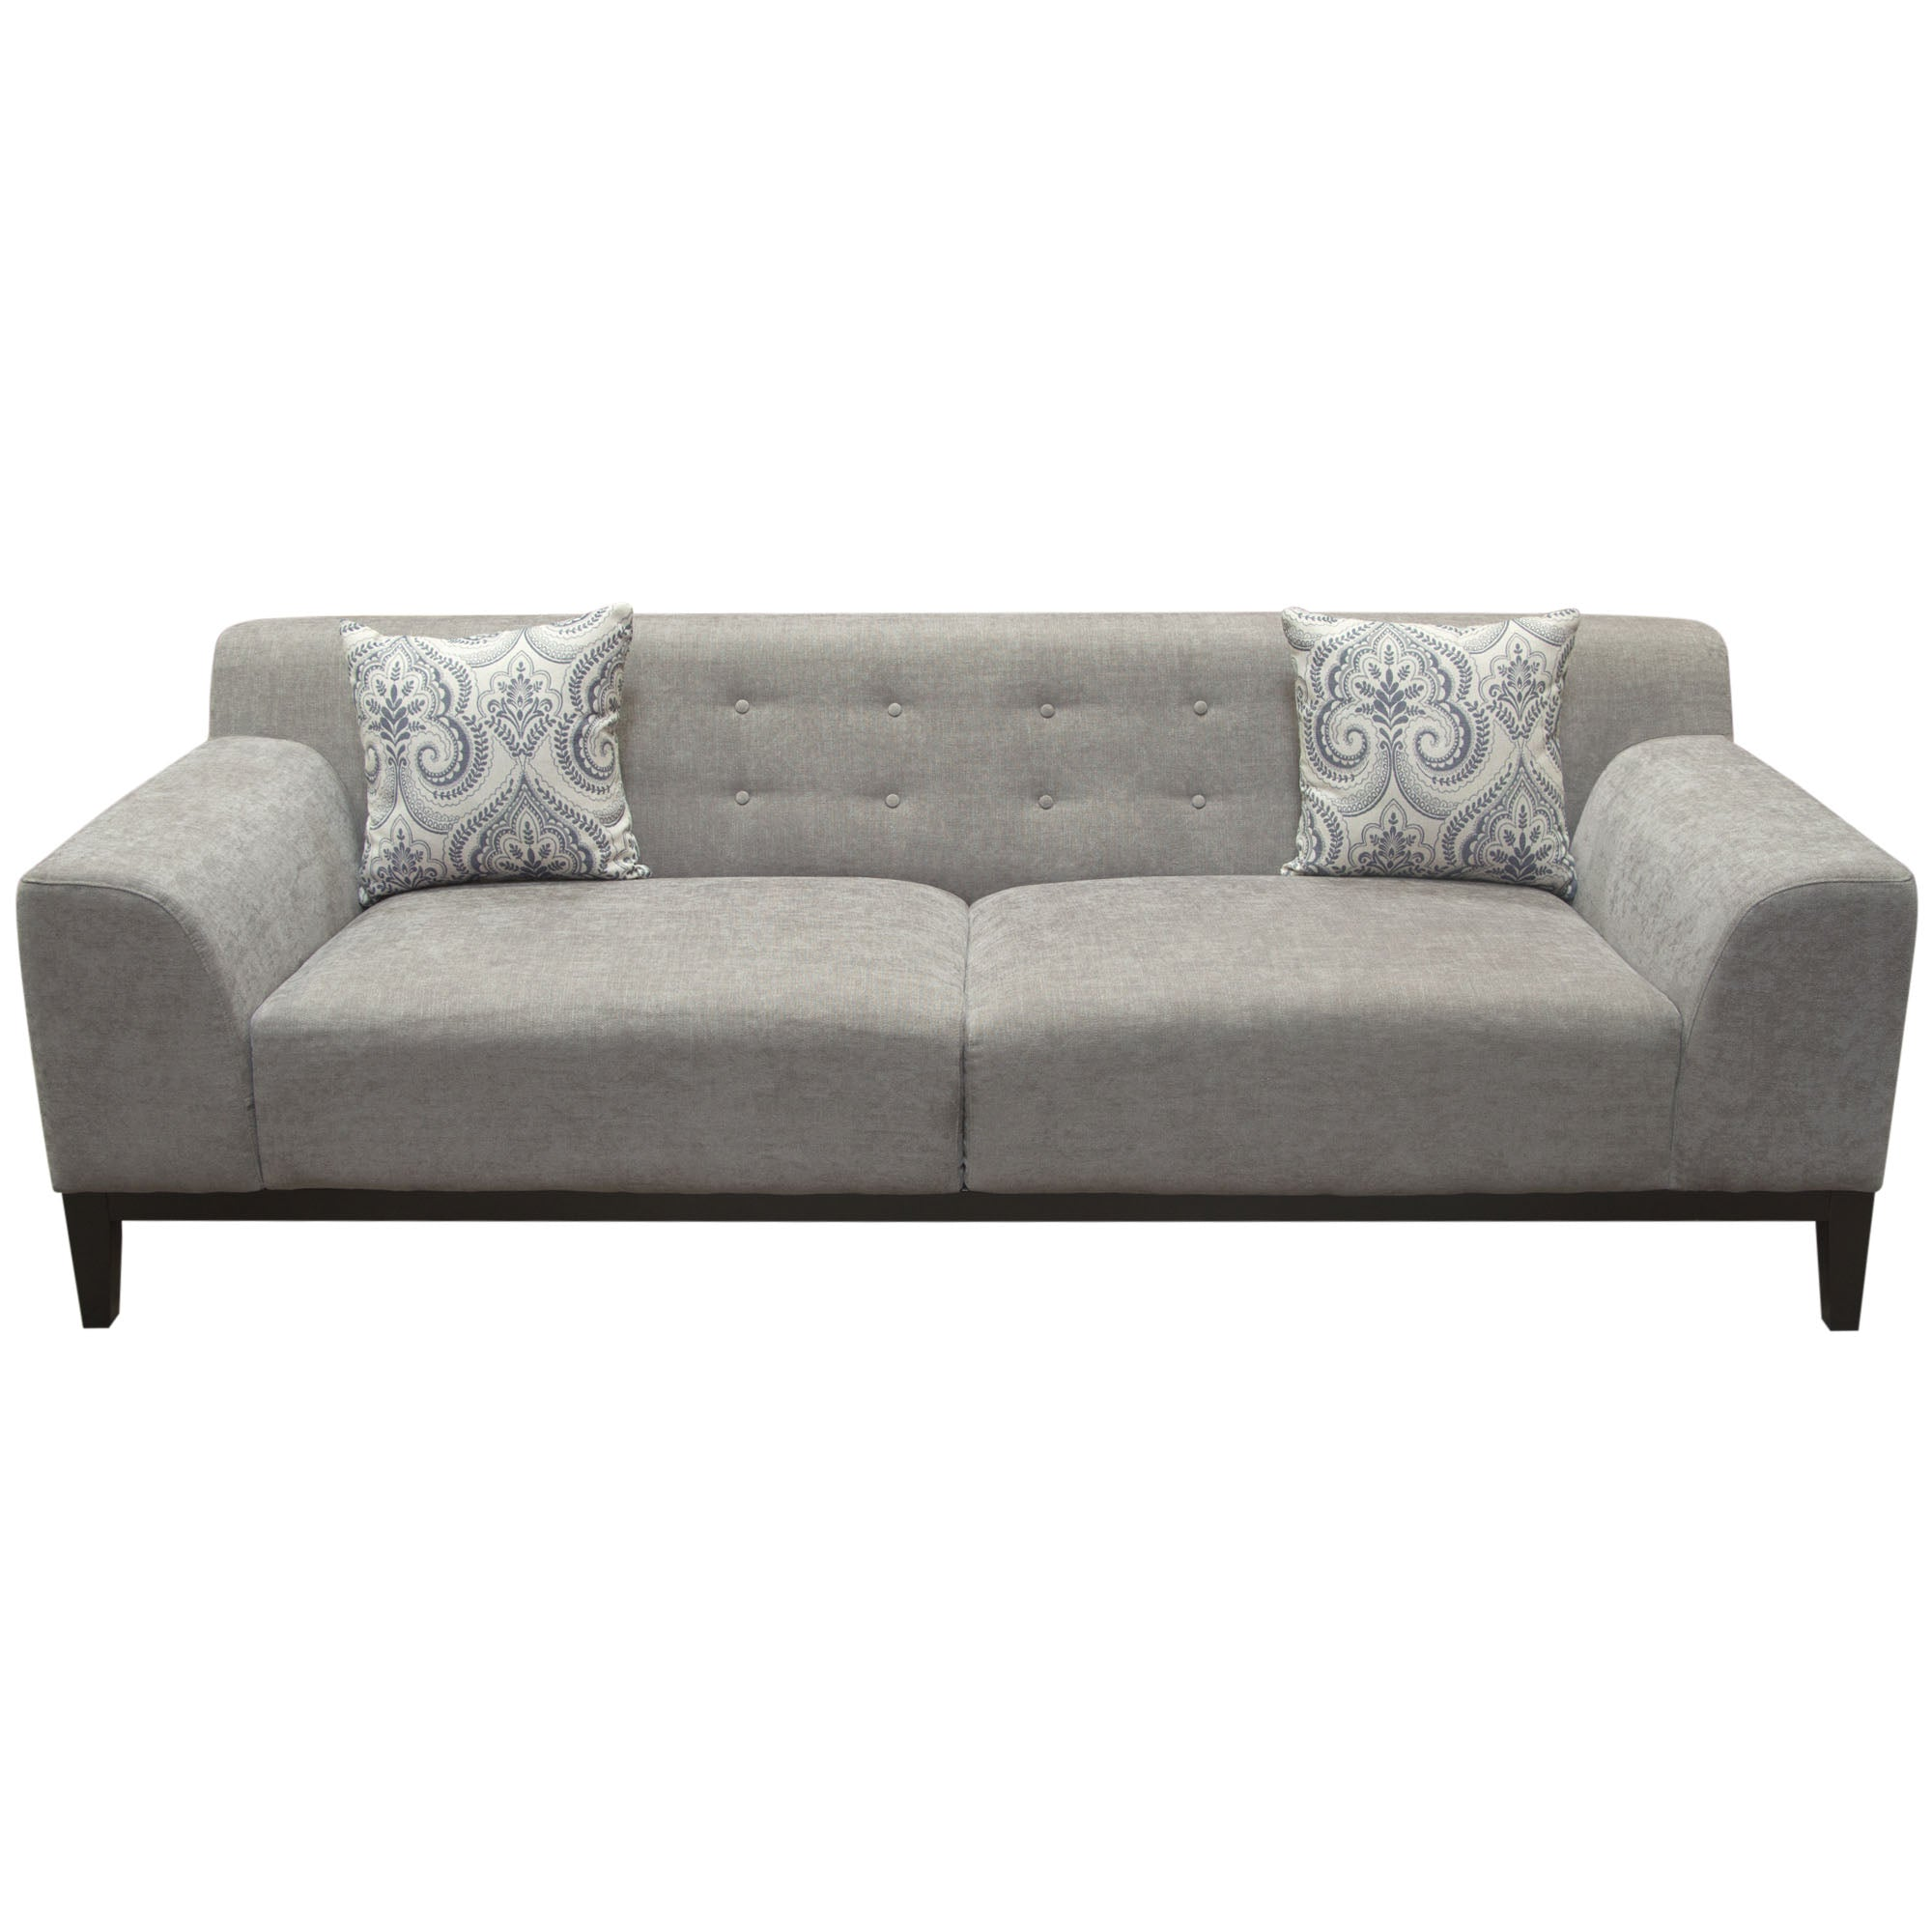 Diamond sofa marqueesoms marquee tufted back sofa in moonstone fabric with accent pillows